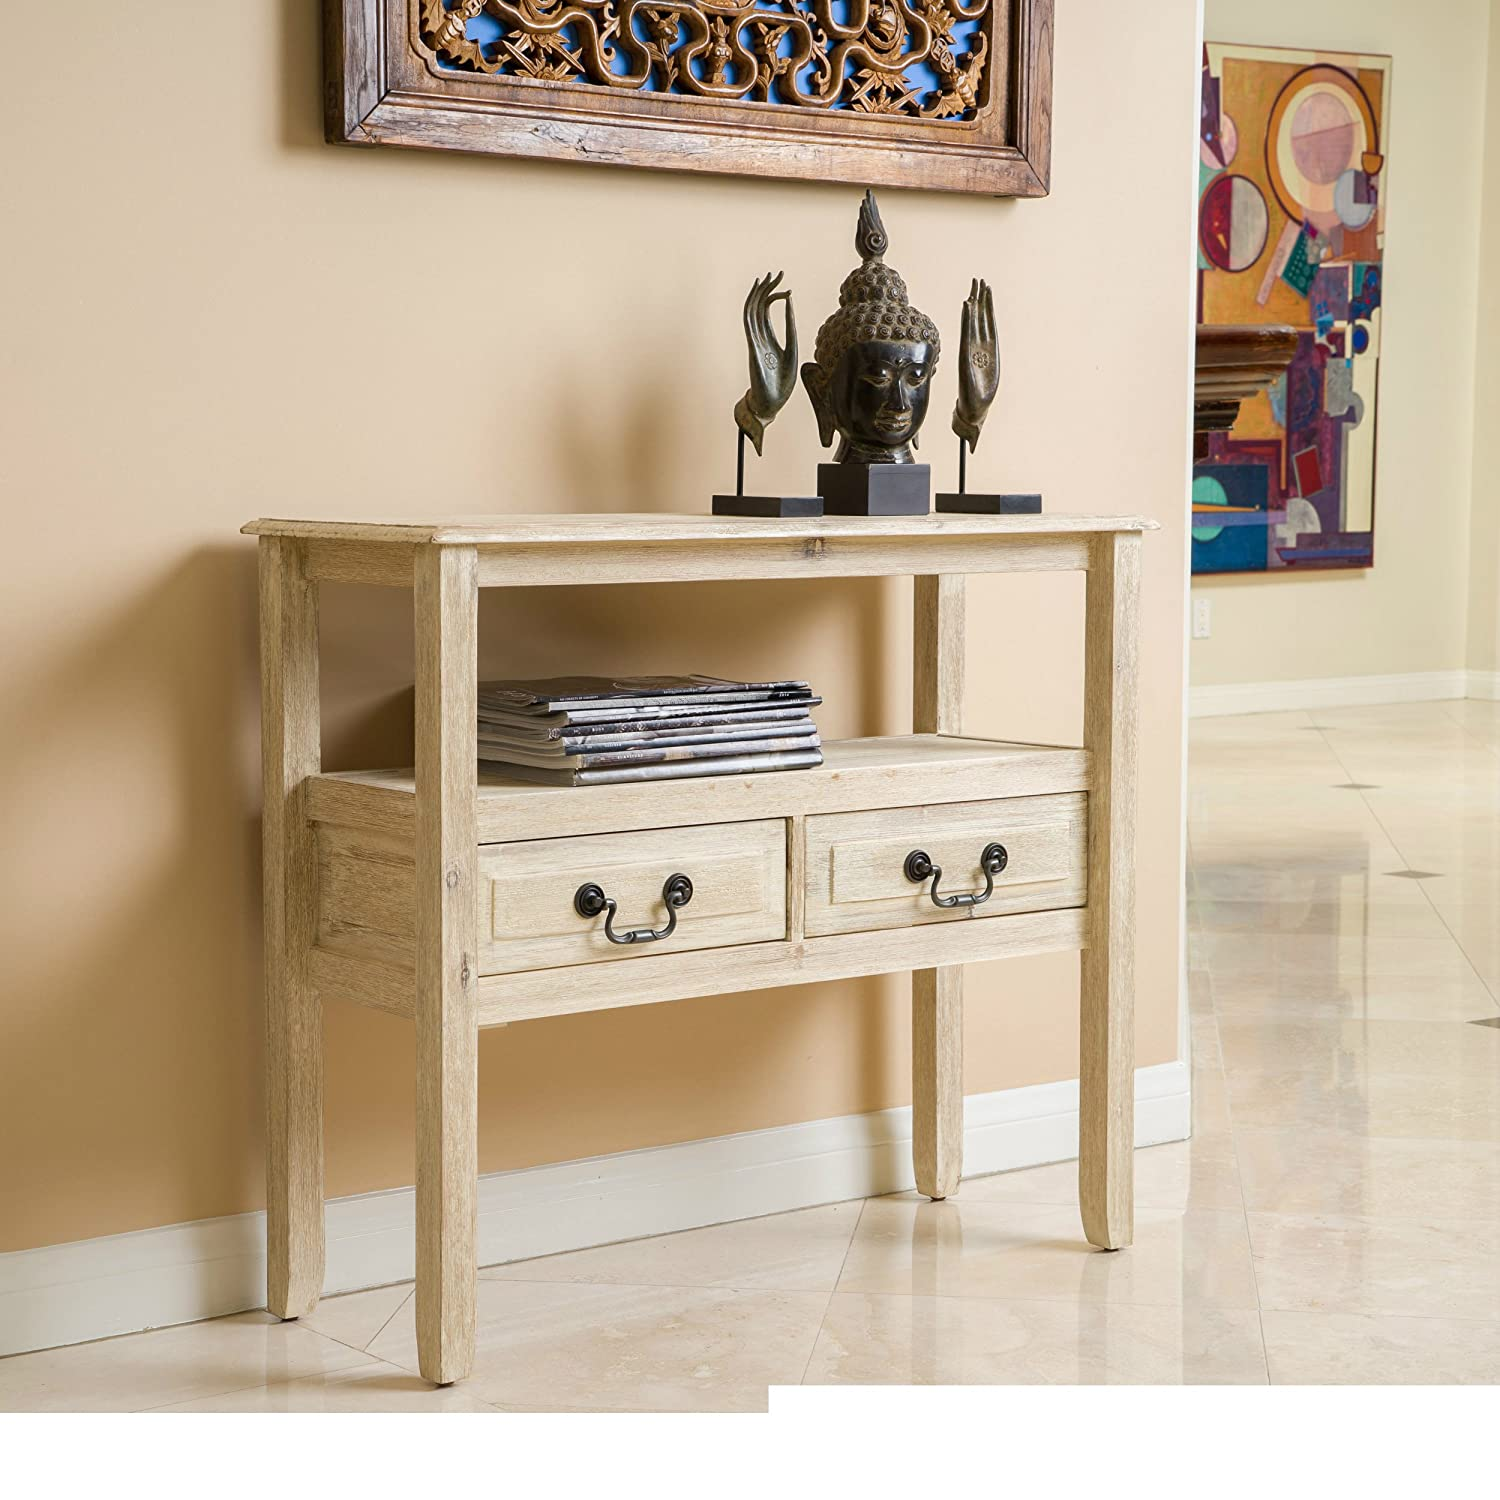 Modern Rustic Acacia Wood Accent Console Table with Shelf and 2 Drawer – Includes Modhaus Living Pen Brushed Morning Mist